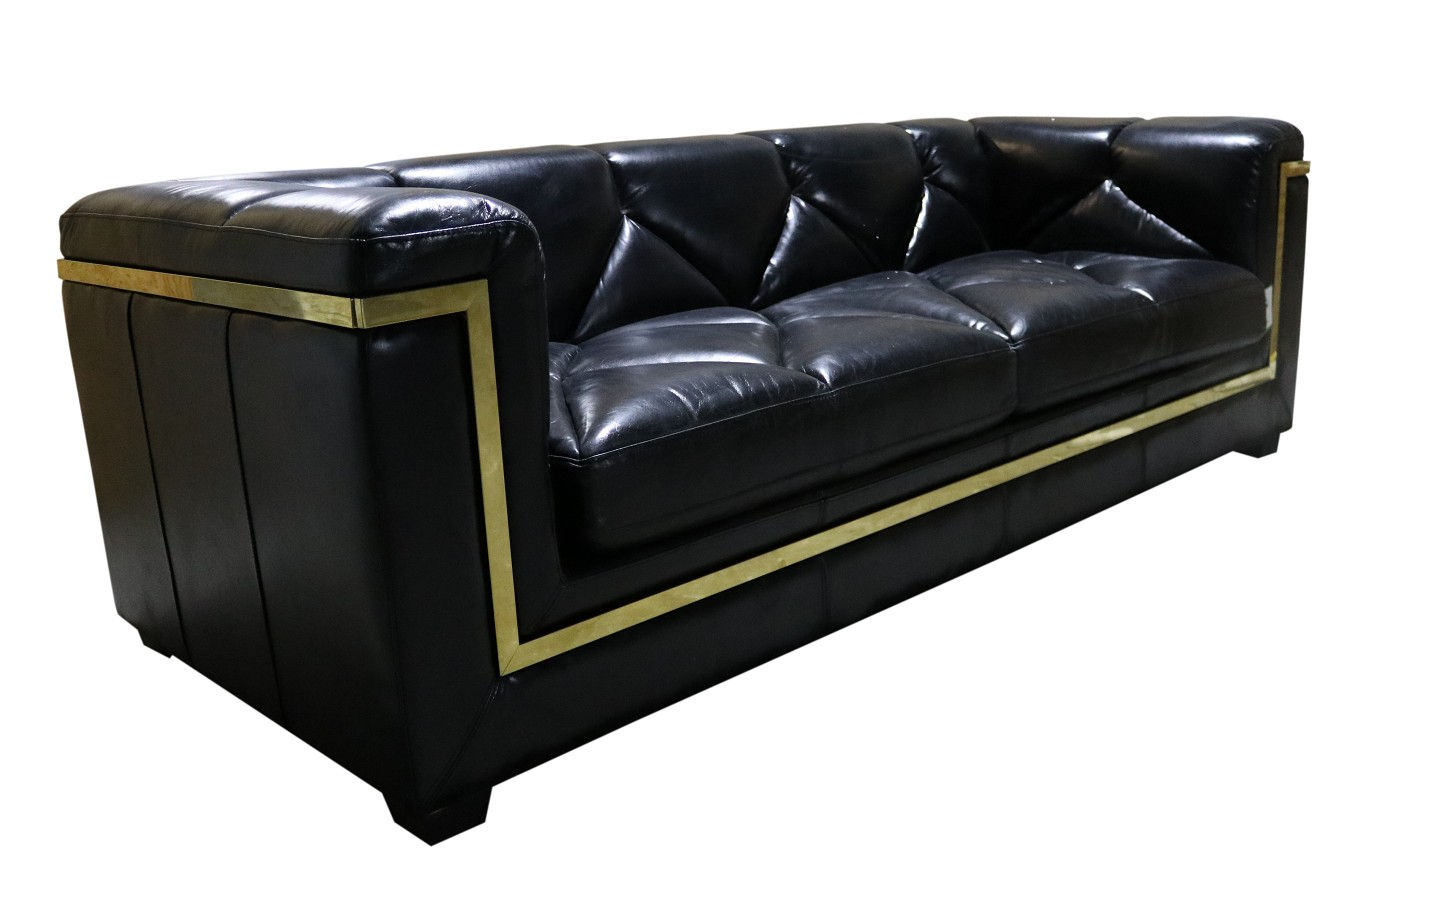 Gatsby 3 Seater Black Distressed Leather Sofa Vintage Distressed Real Leather Chesterfield 3 Seater Sofa